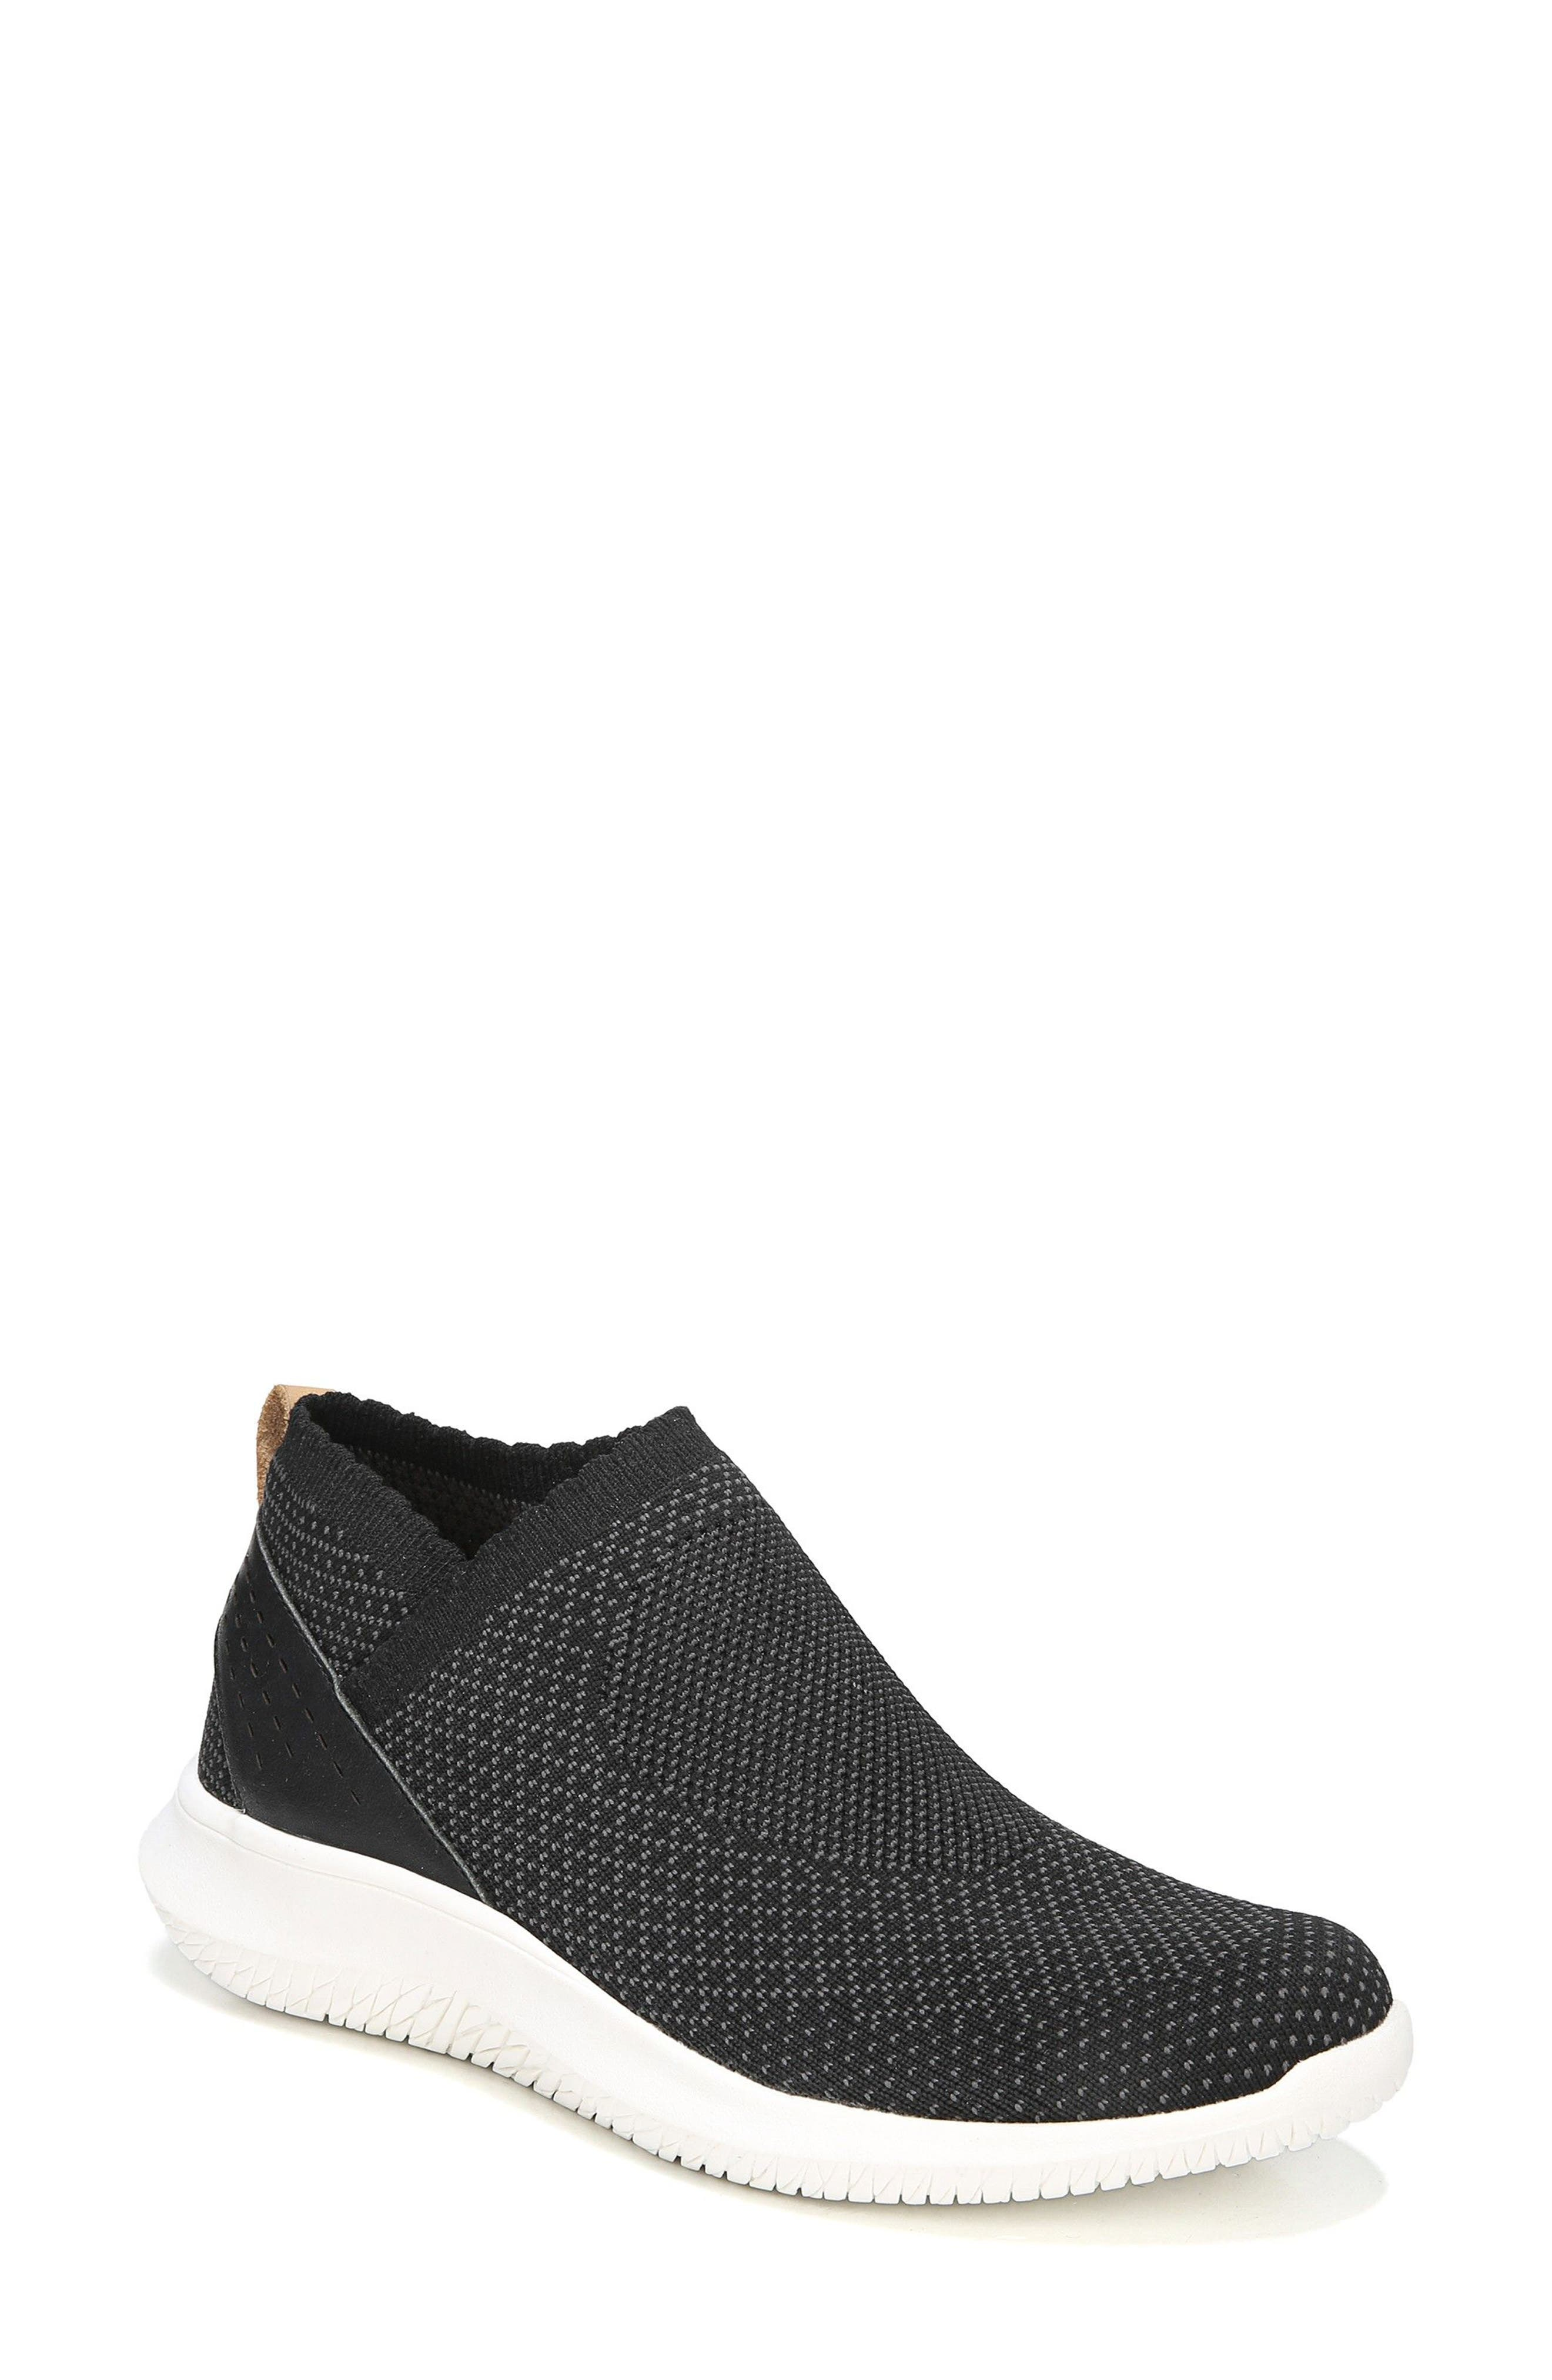 Fierce Knit Slip-On Sneaker,                             Main thumbnail 1, color,                             Black Knit Fabric